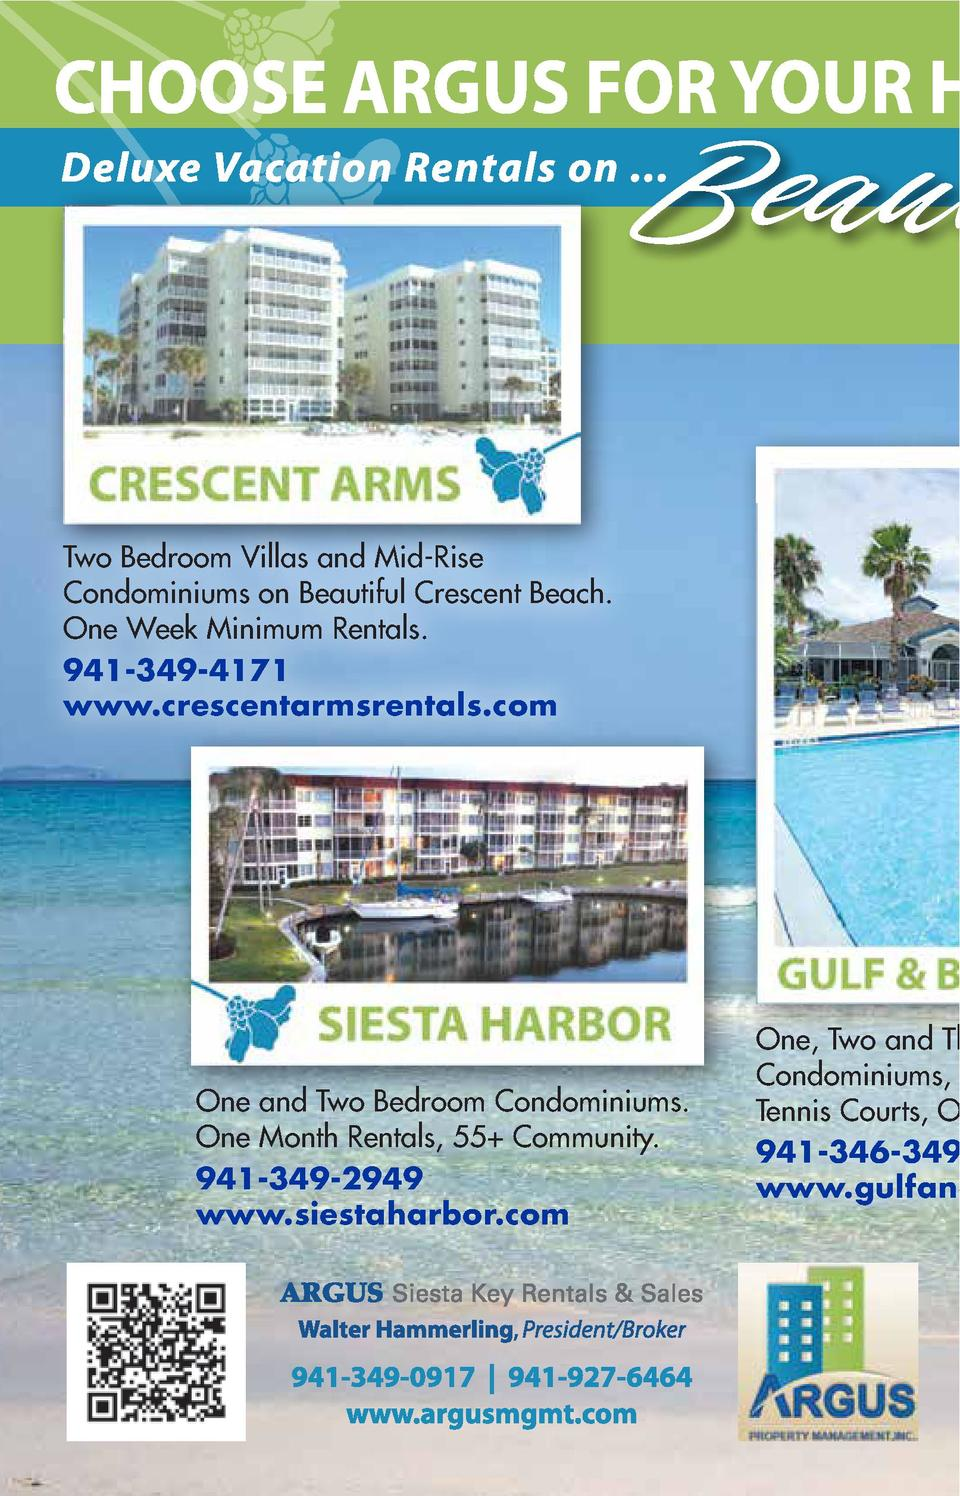 Beau Two Bedroom Villas and Mid-Rise Condominiums on Beautiful Crescent Beach. One Week Minimum Rentals. 941-349-4171 www....